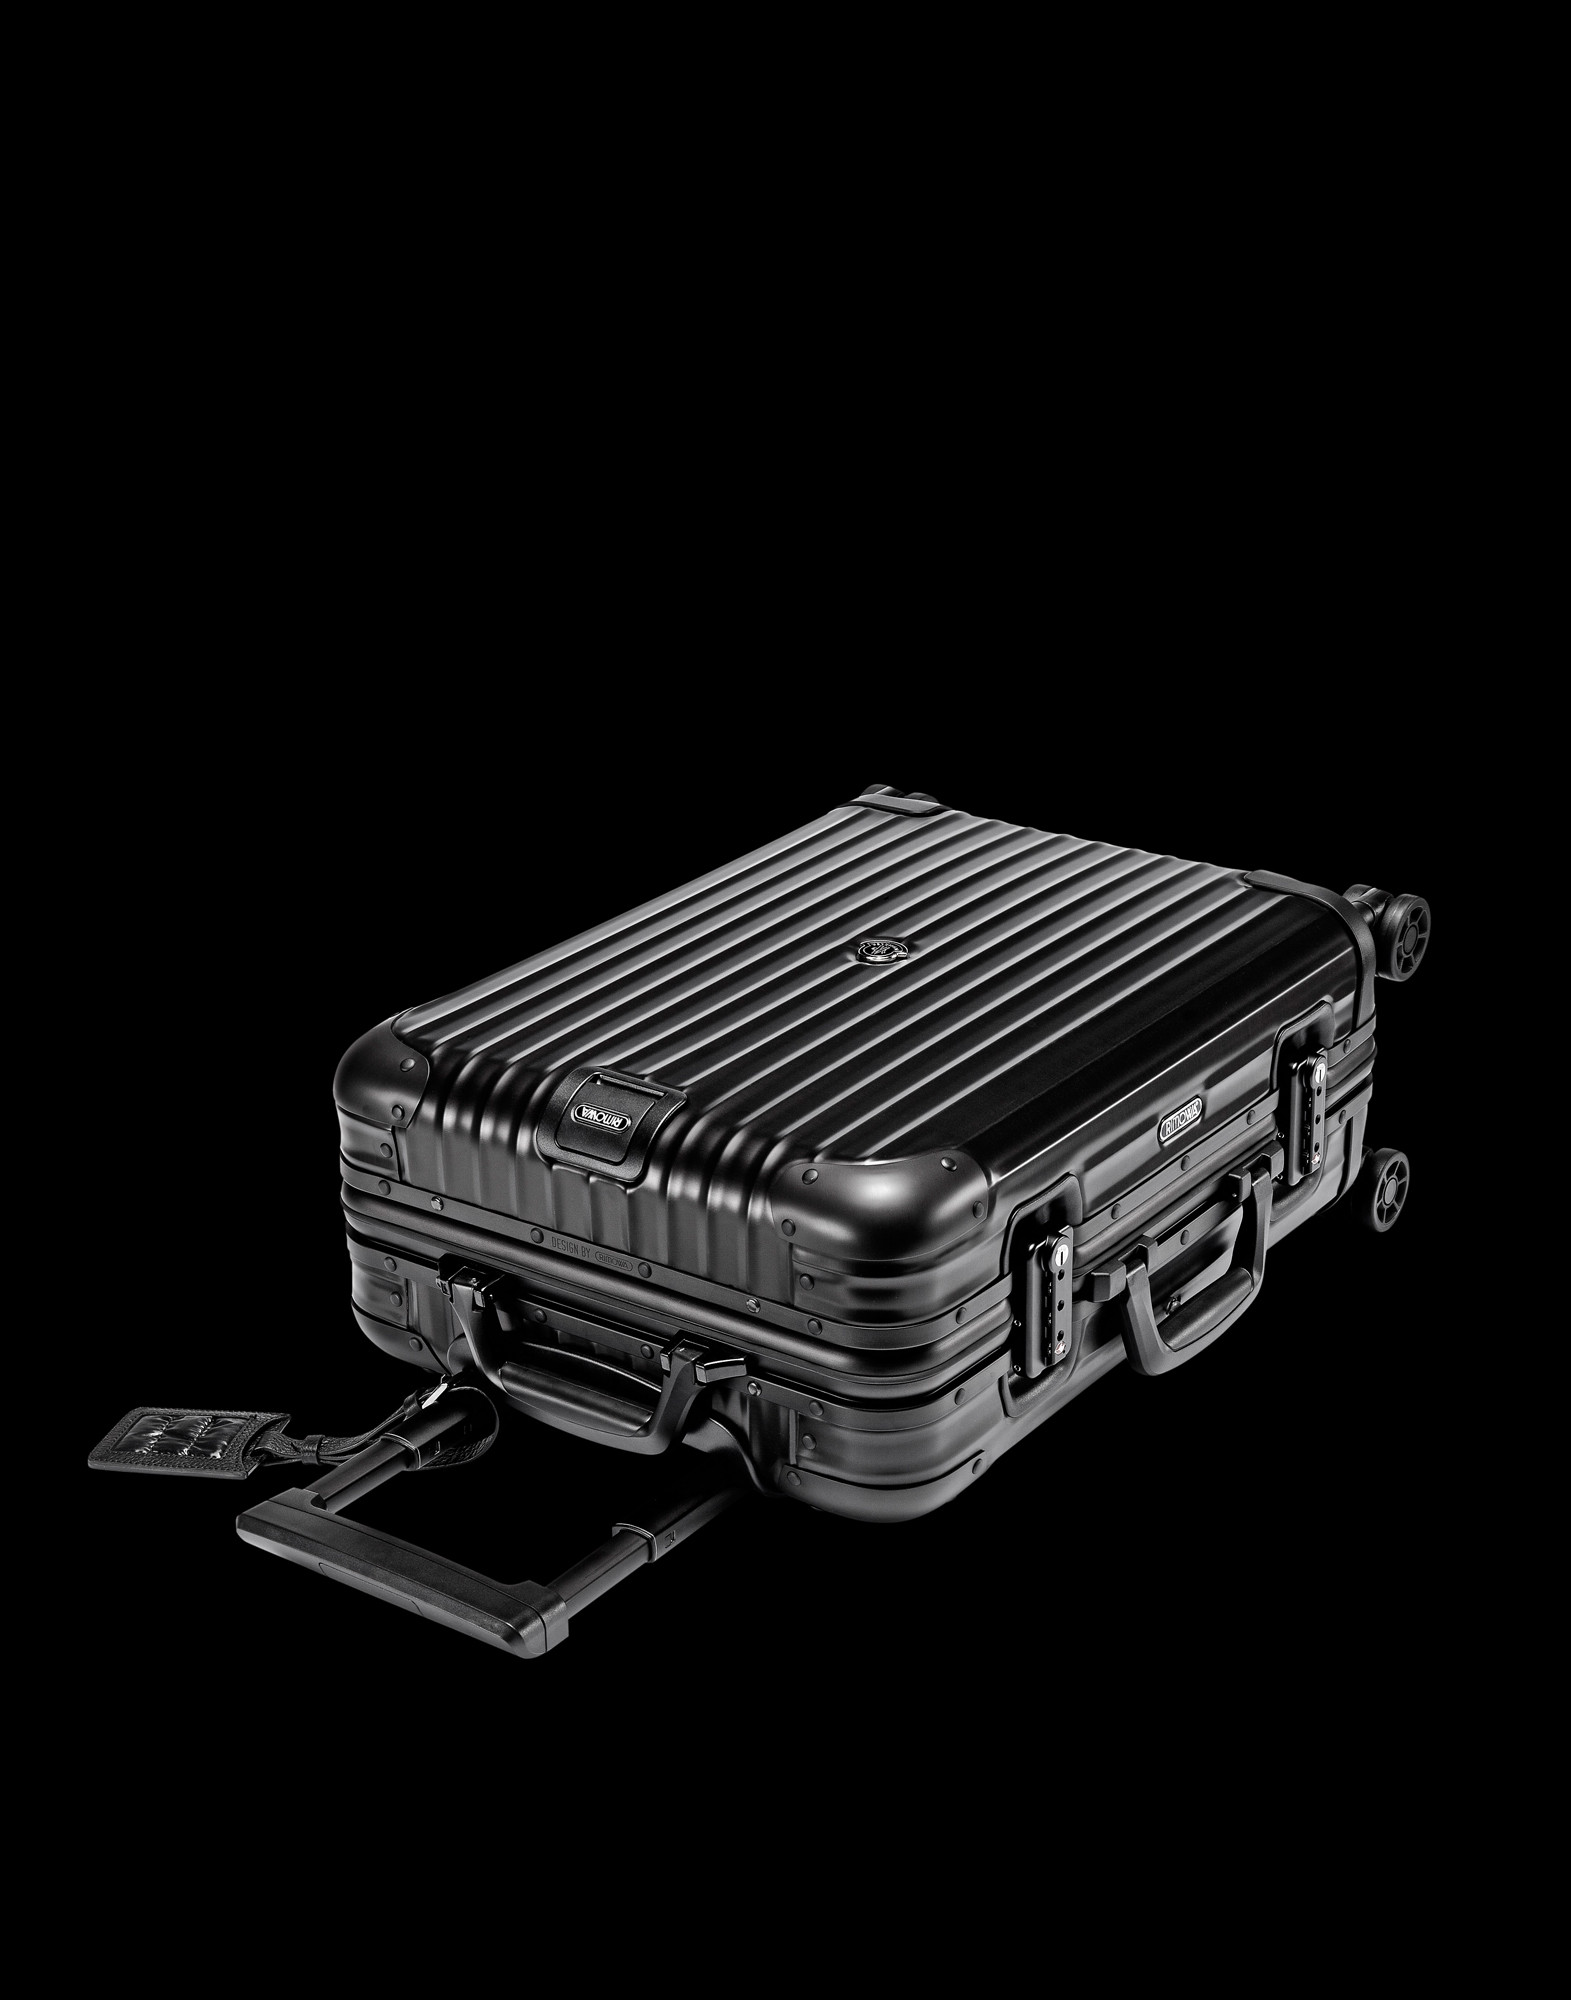 MONCLER Women - Spring-Summer 13 - HANDBAGS - Wheeled luggage - Rimowa&Moncler